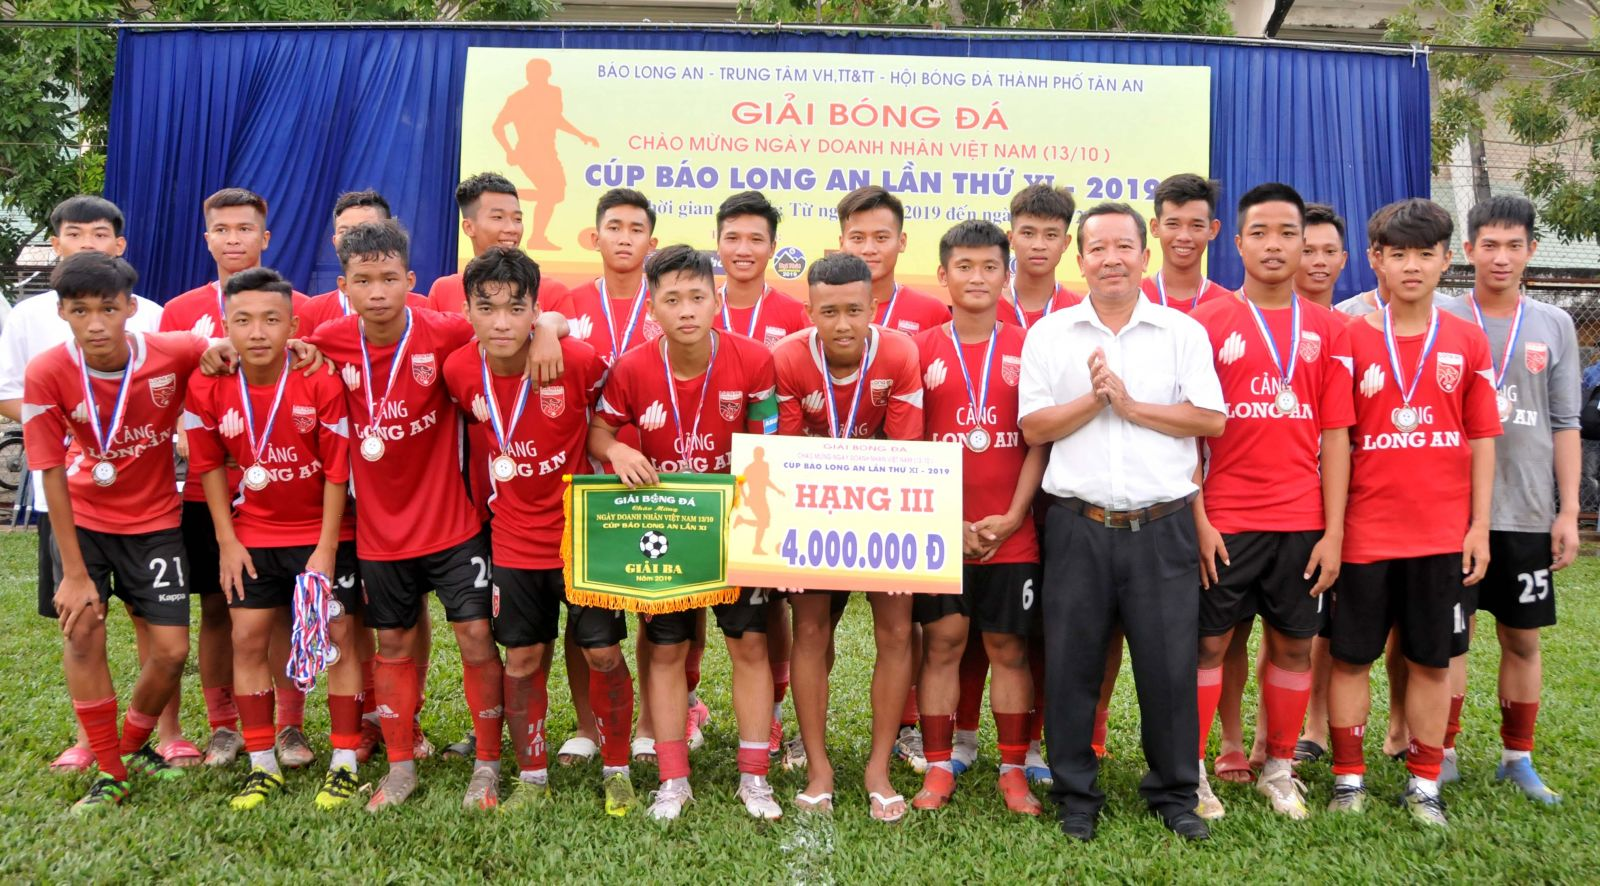 Long An youth team wins the 3rd prize